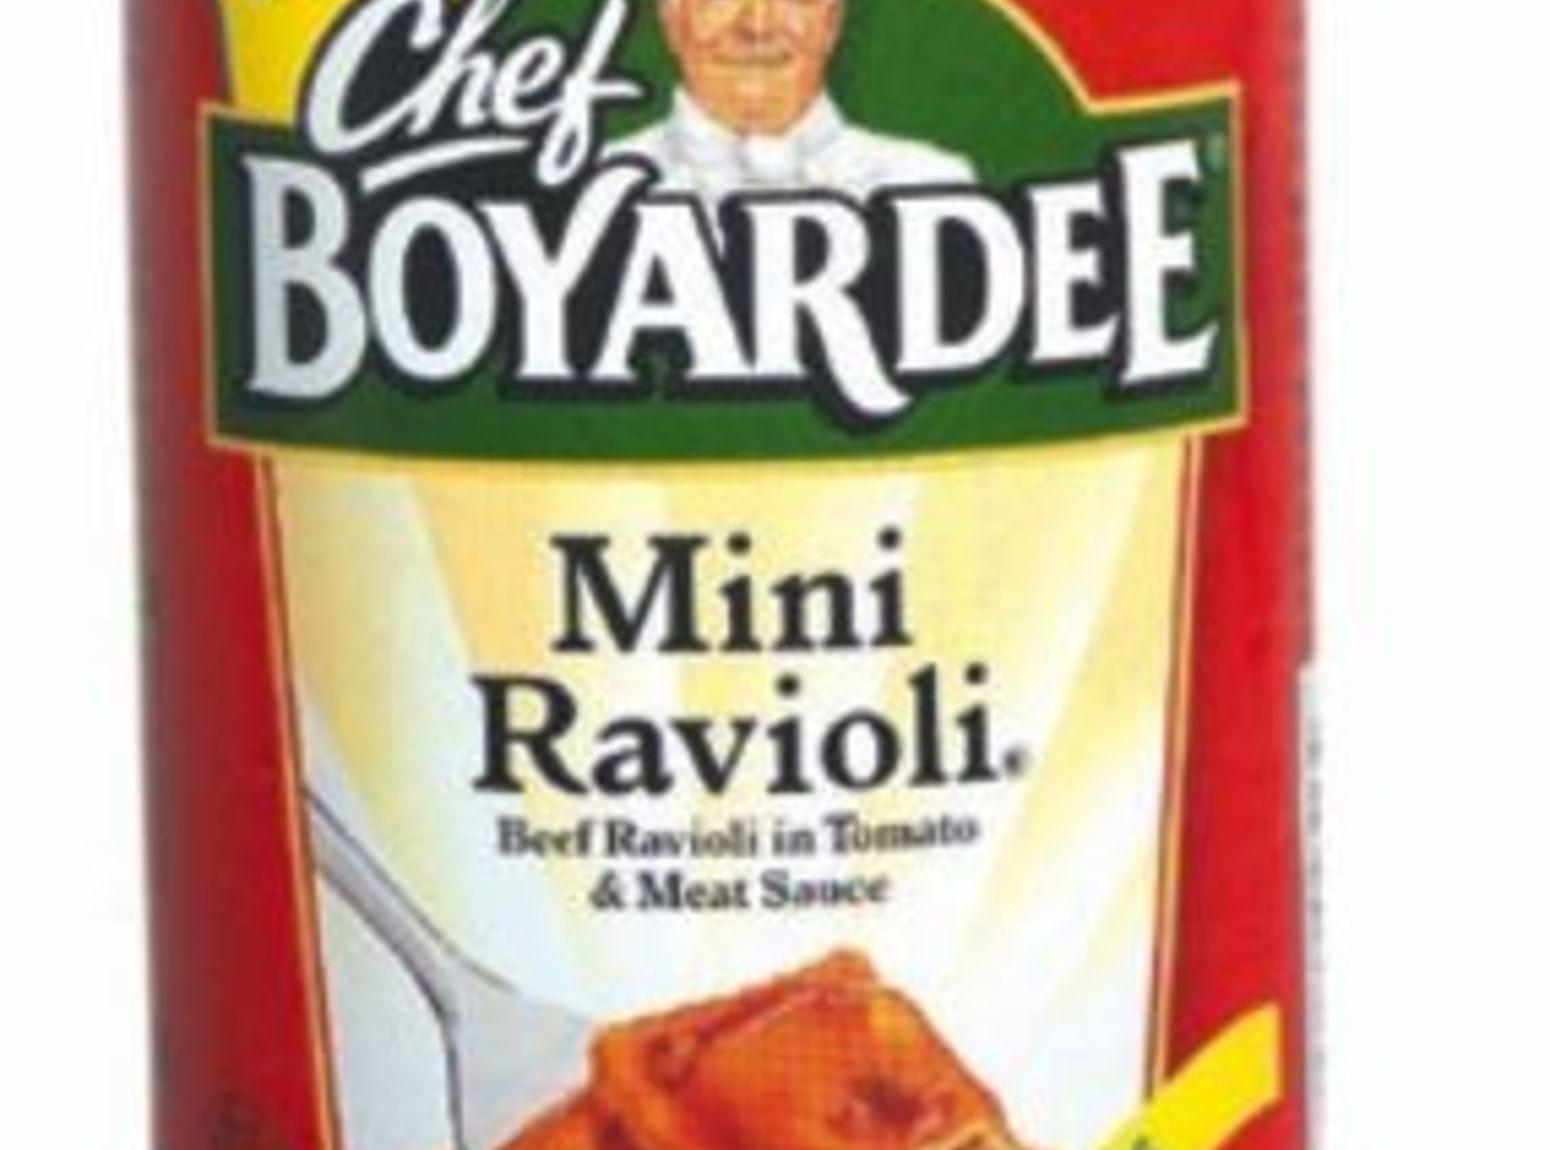 Chef Boyardee Tomato Sauce (Copy Cat) Recipe